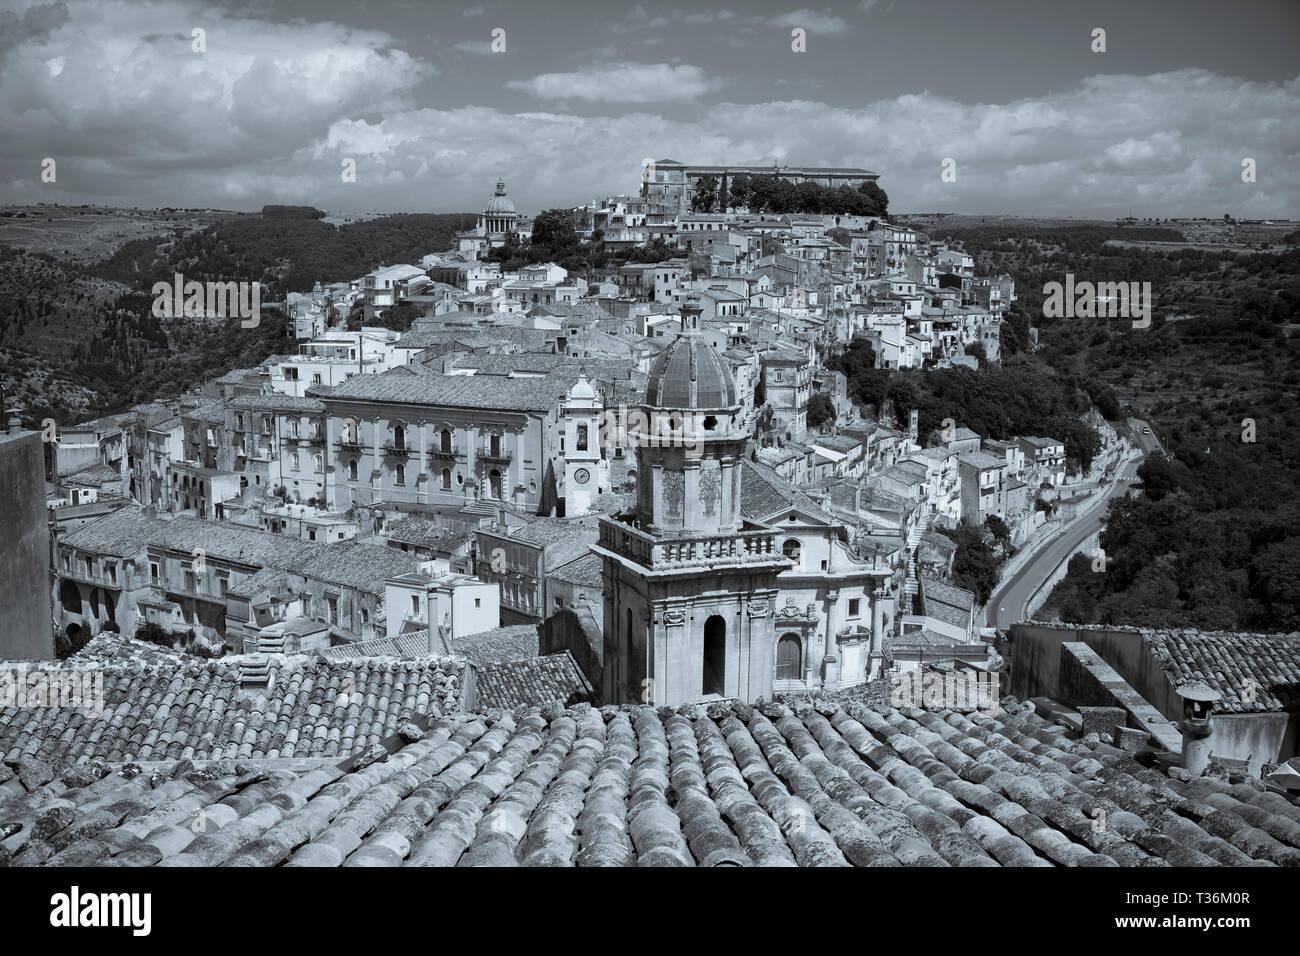 Aerial view of Ragusa Ibla famous hill town with Santa Maria delli'Idria a Baroque style church in foreground, Sicily Stock Photo